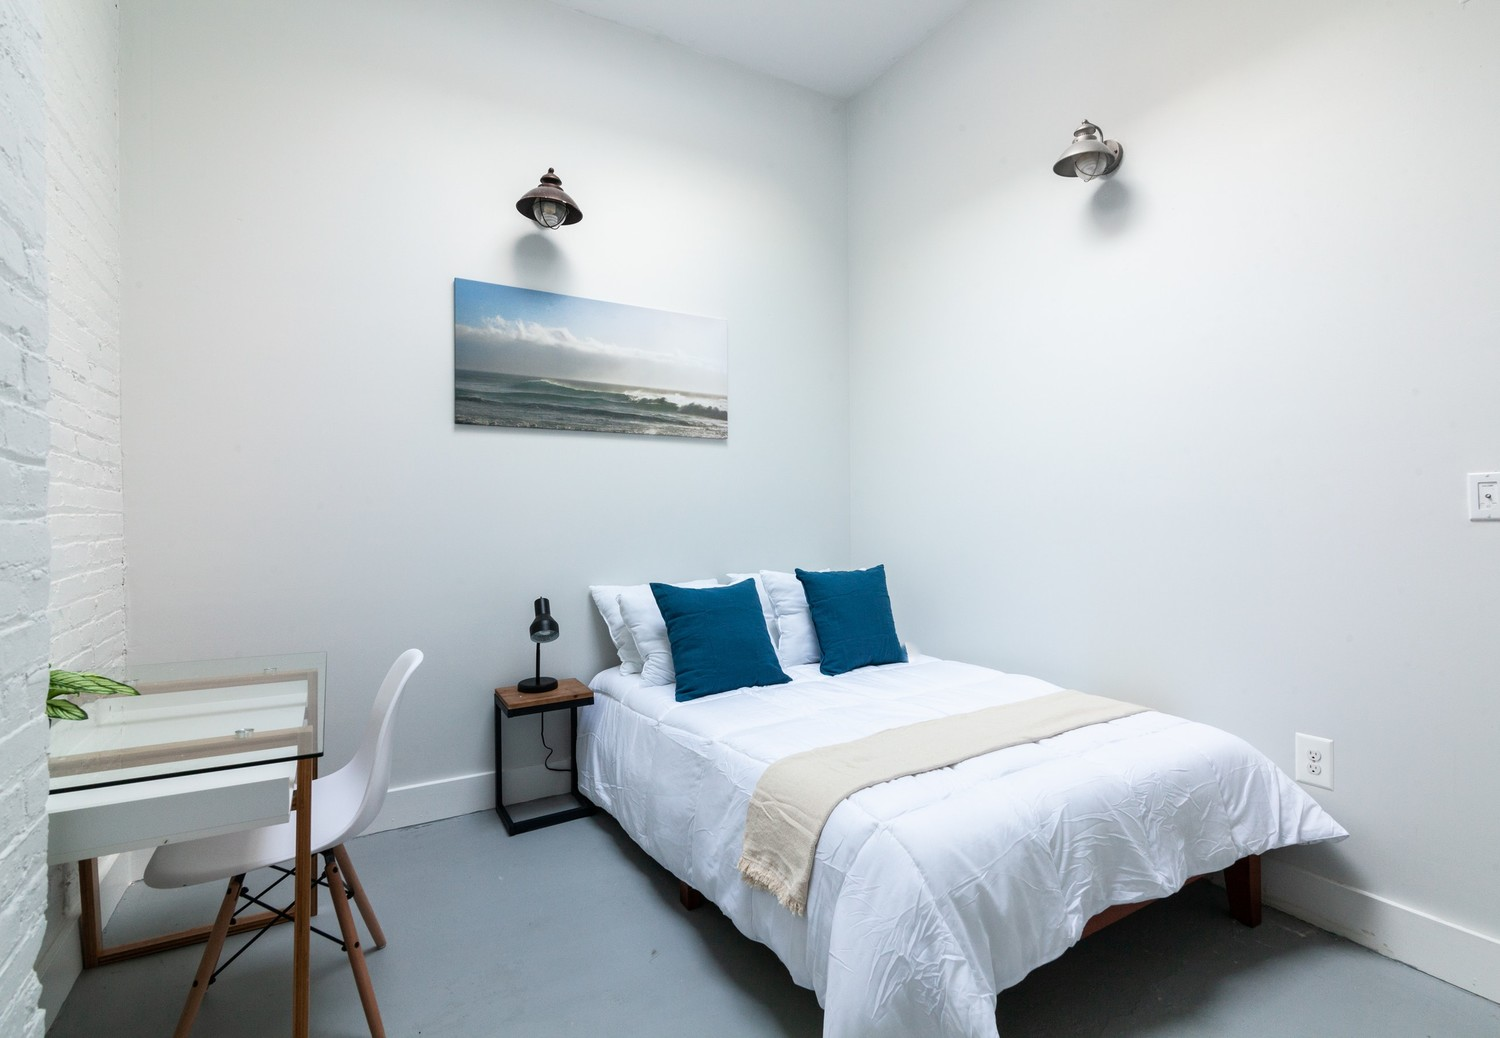 Free WiFi + Utilities - Fully Furnished Room